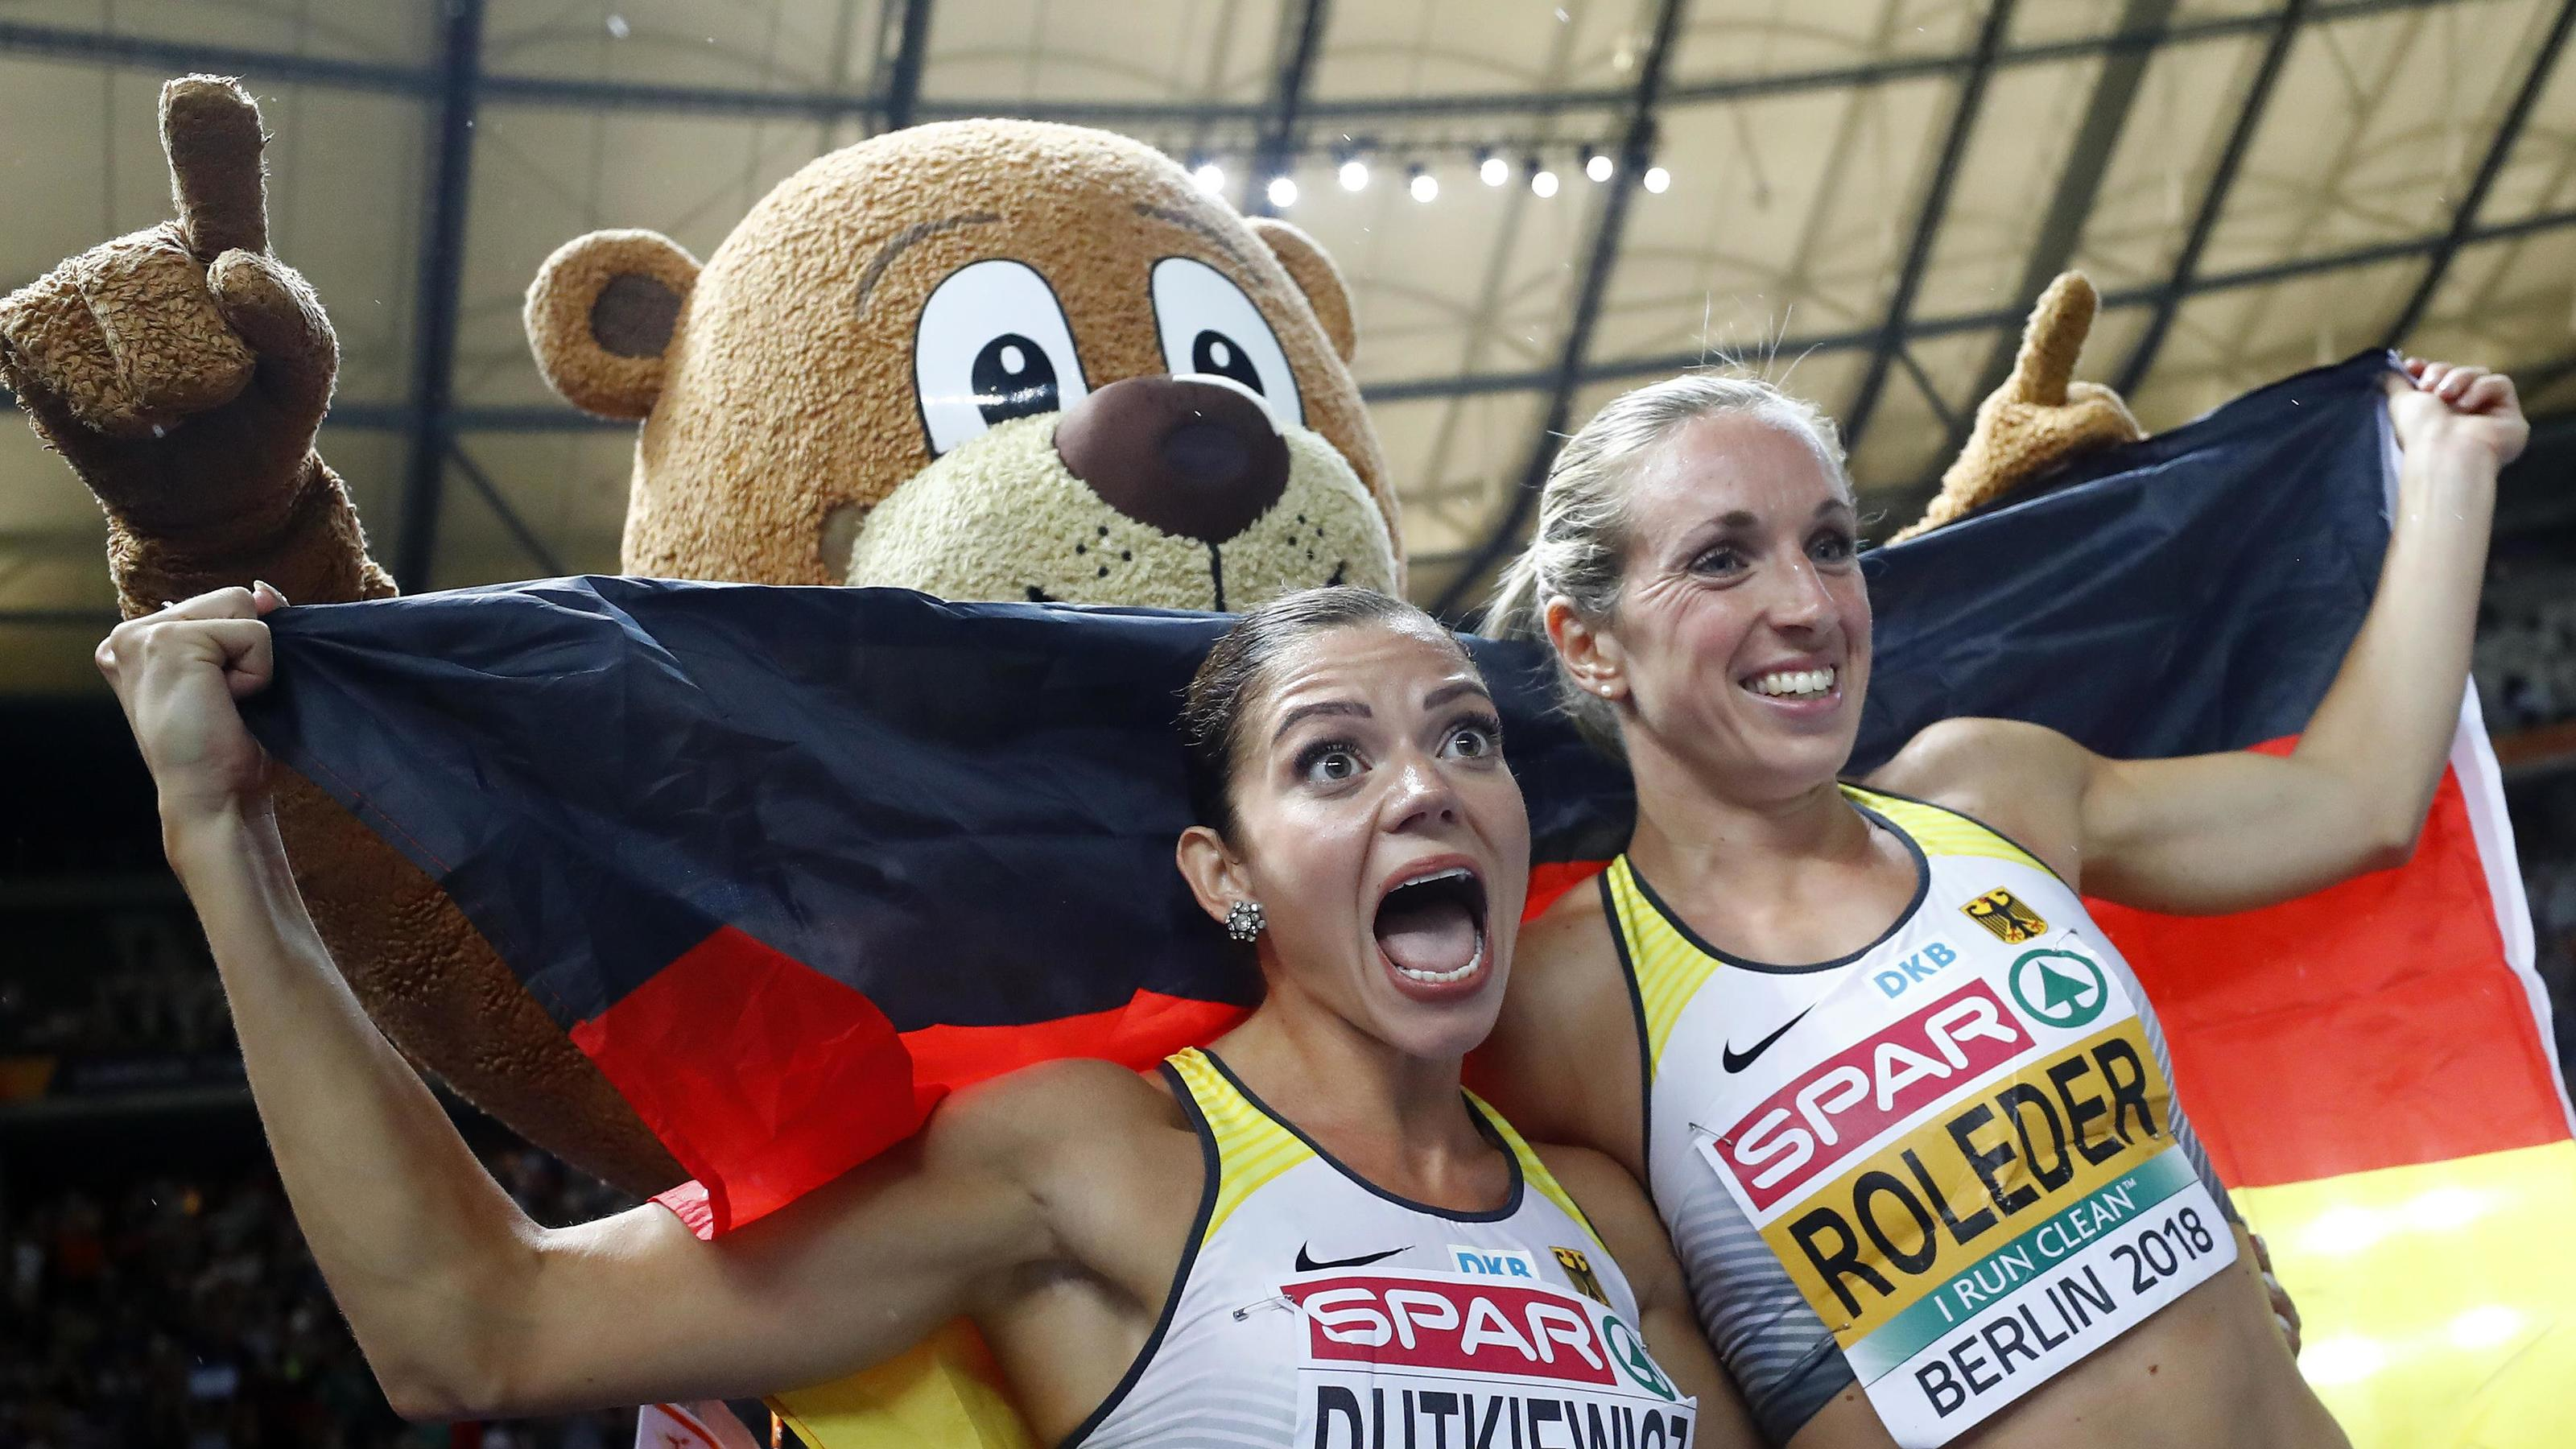 2018 European Championships - Women's 100m Hurdles Final - Olympic Stadium, Berlin, Germany - August 9, 2018 - Second placed Pamela Dutkiewicz of Germany and third placed Cindy Roleder of Germany celebrate with games mascot Berlino. REUTERS/Kai Pfaff